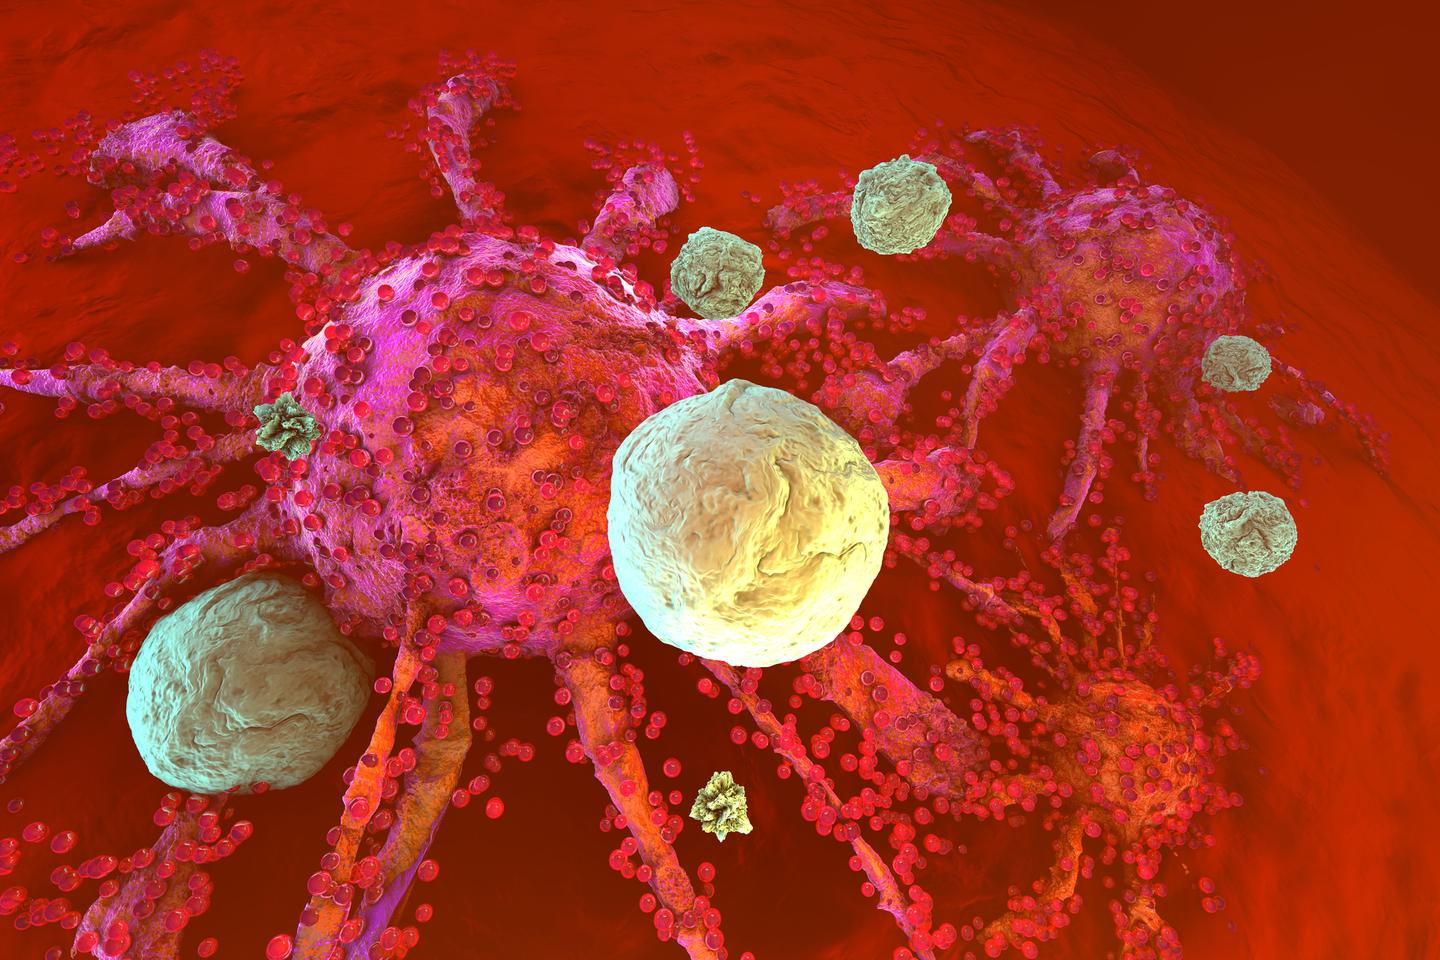 Researchers have used ultrasound to focus cancer immunotherapy on tumors, to reduce off-target side effects